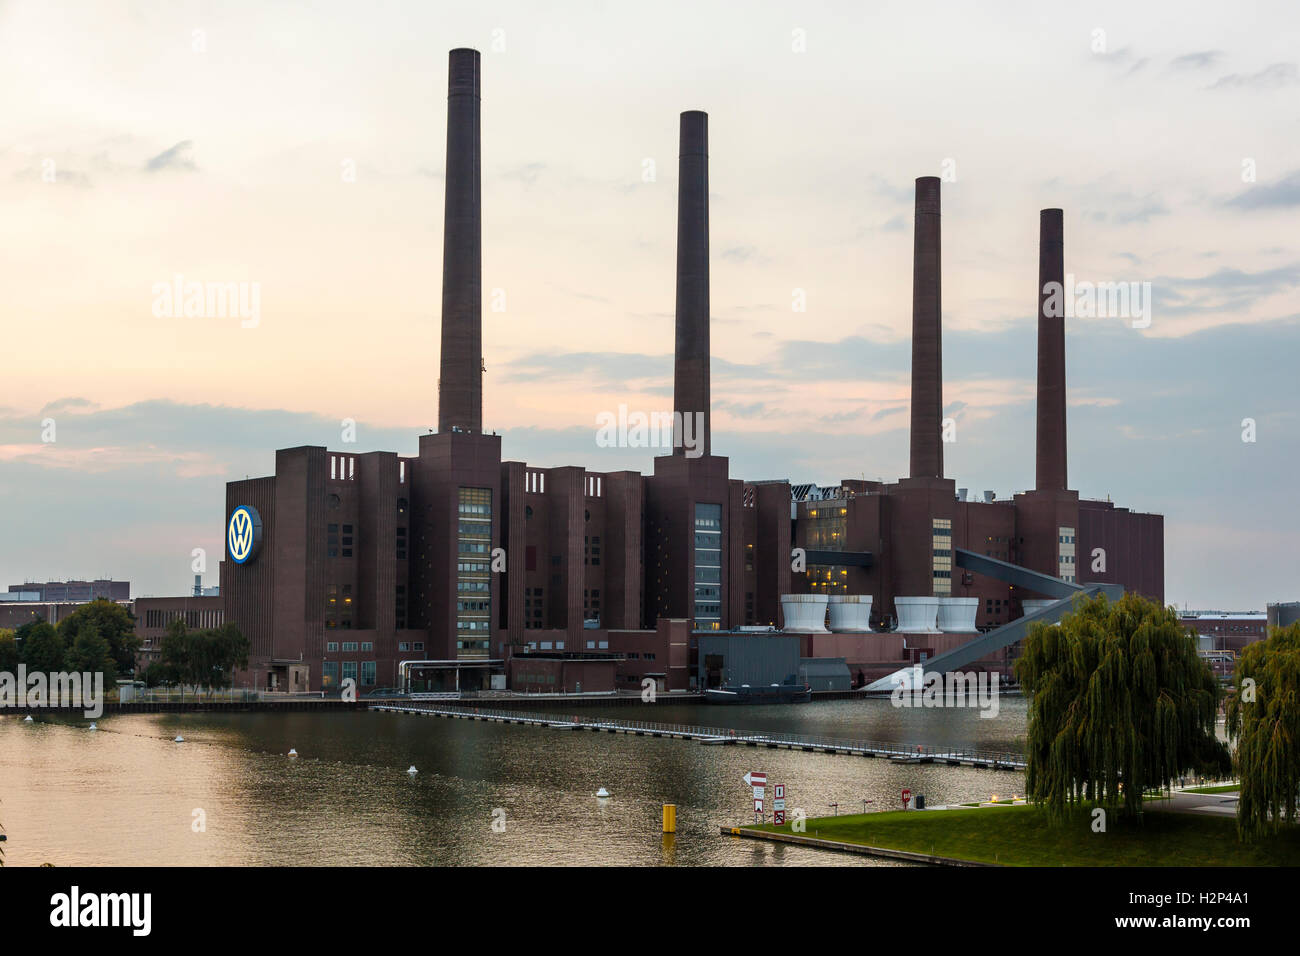 View of the old Volkswagen factory building with the illuminated VW logo Stock Photo